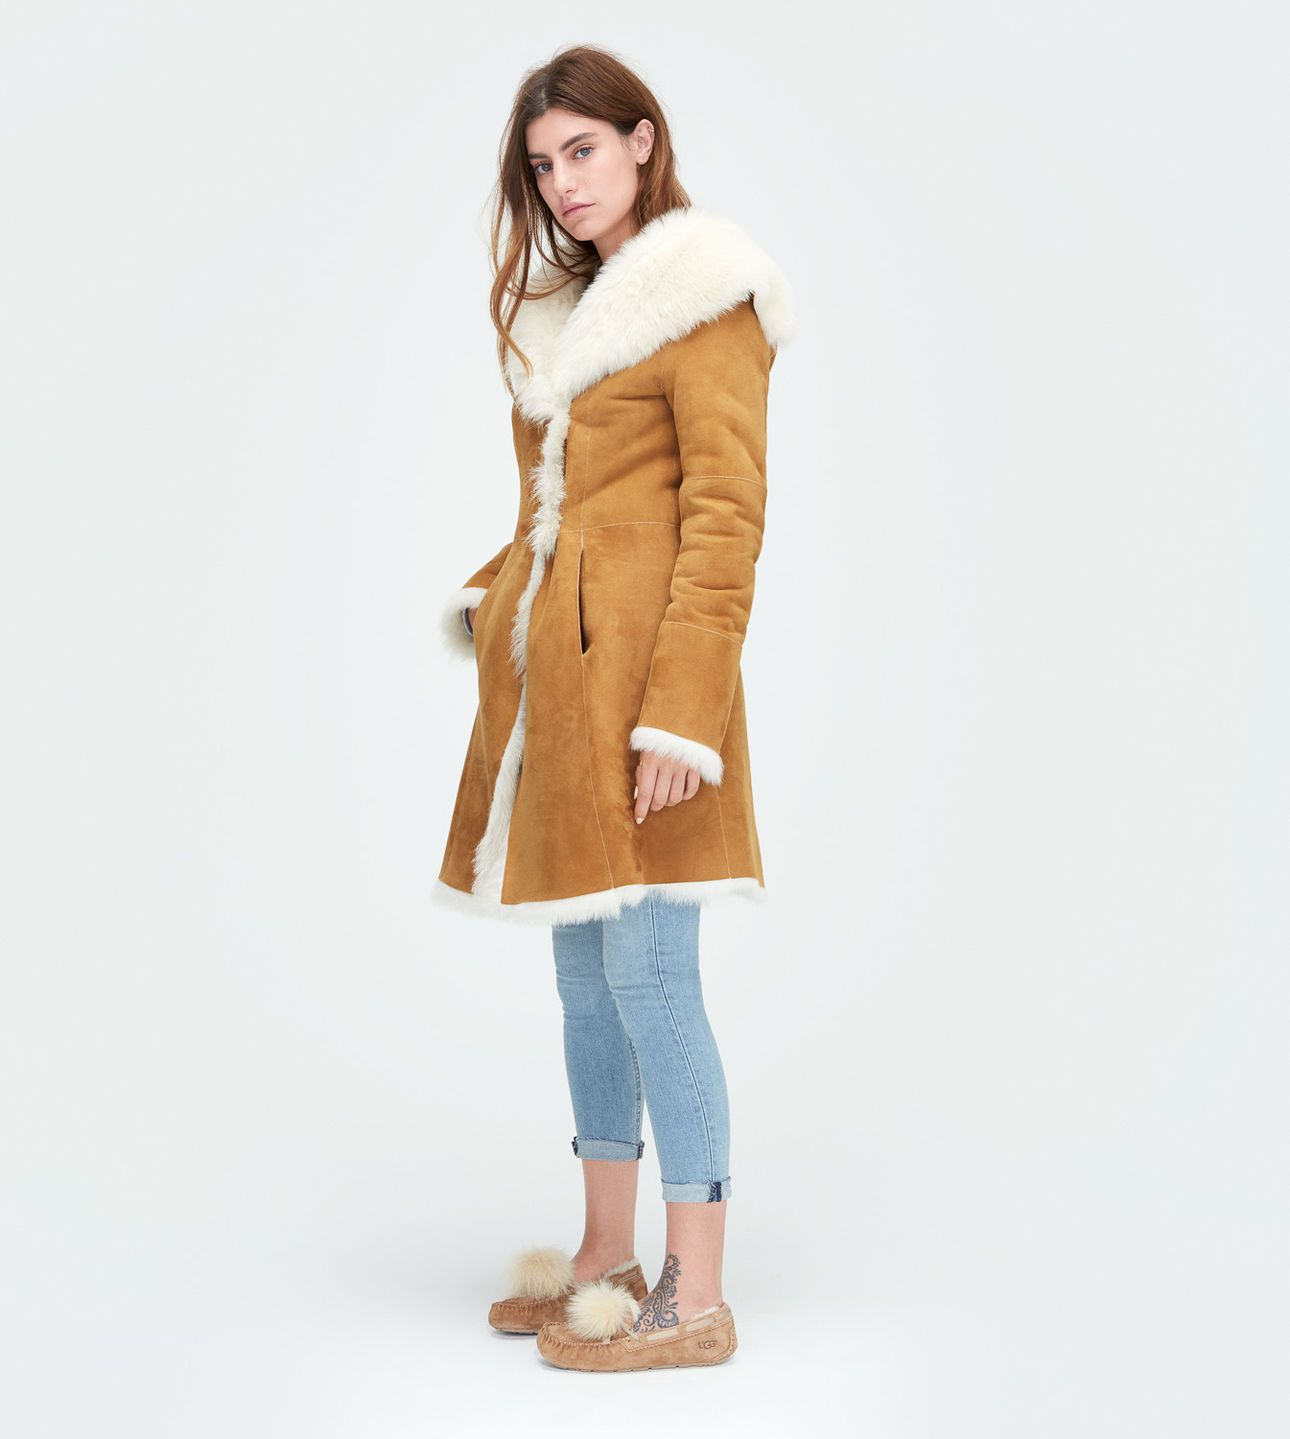 c3edc9d4a3 Women s Share this product Vanesa Toscana Shearling Coat